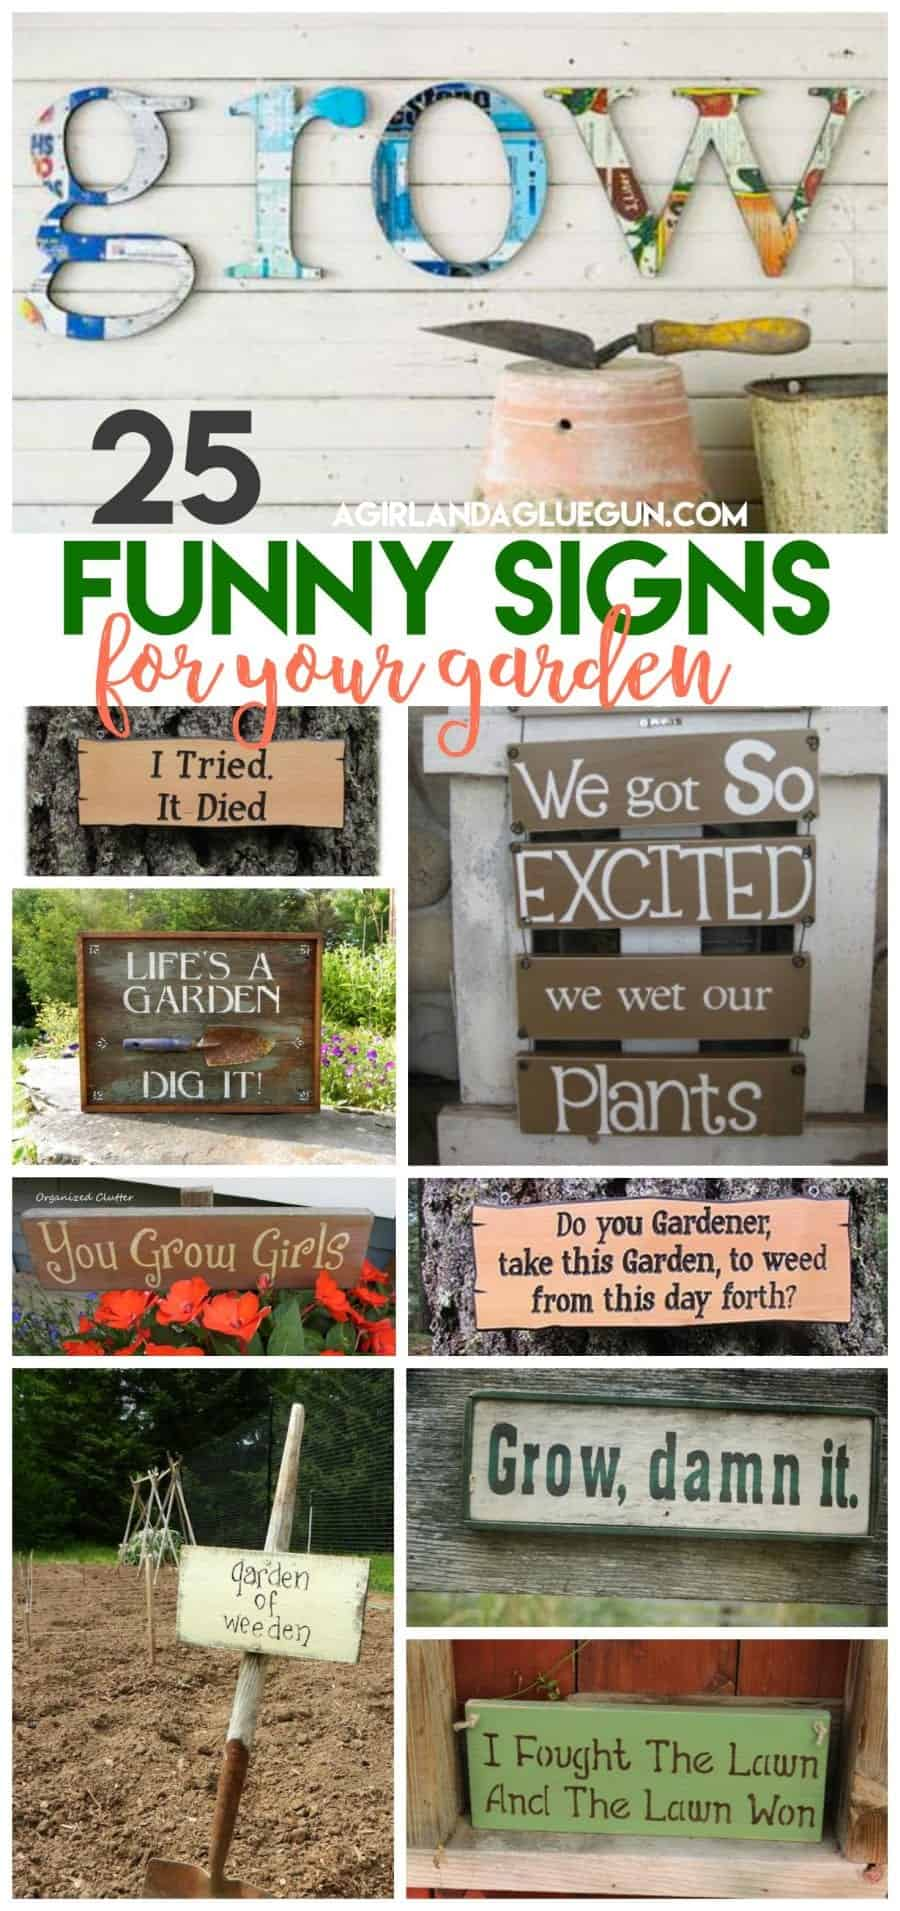 25 Super Funny Garden Signs A Girl And A Glue Gun